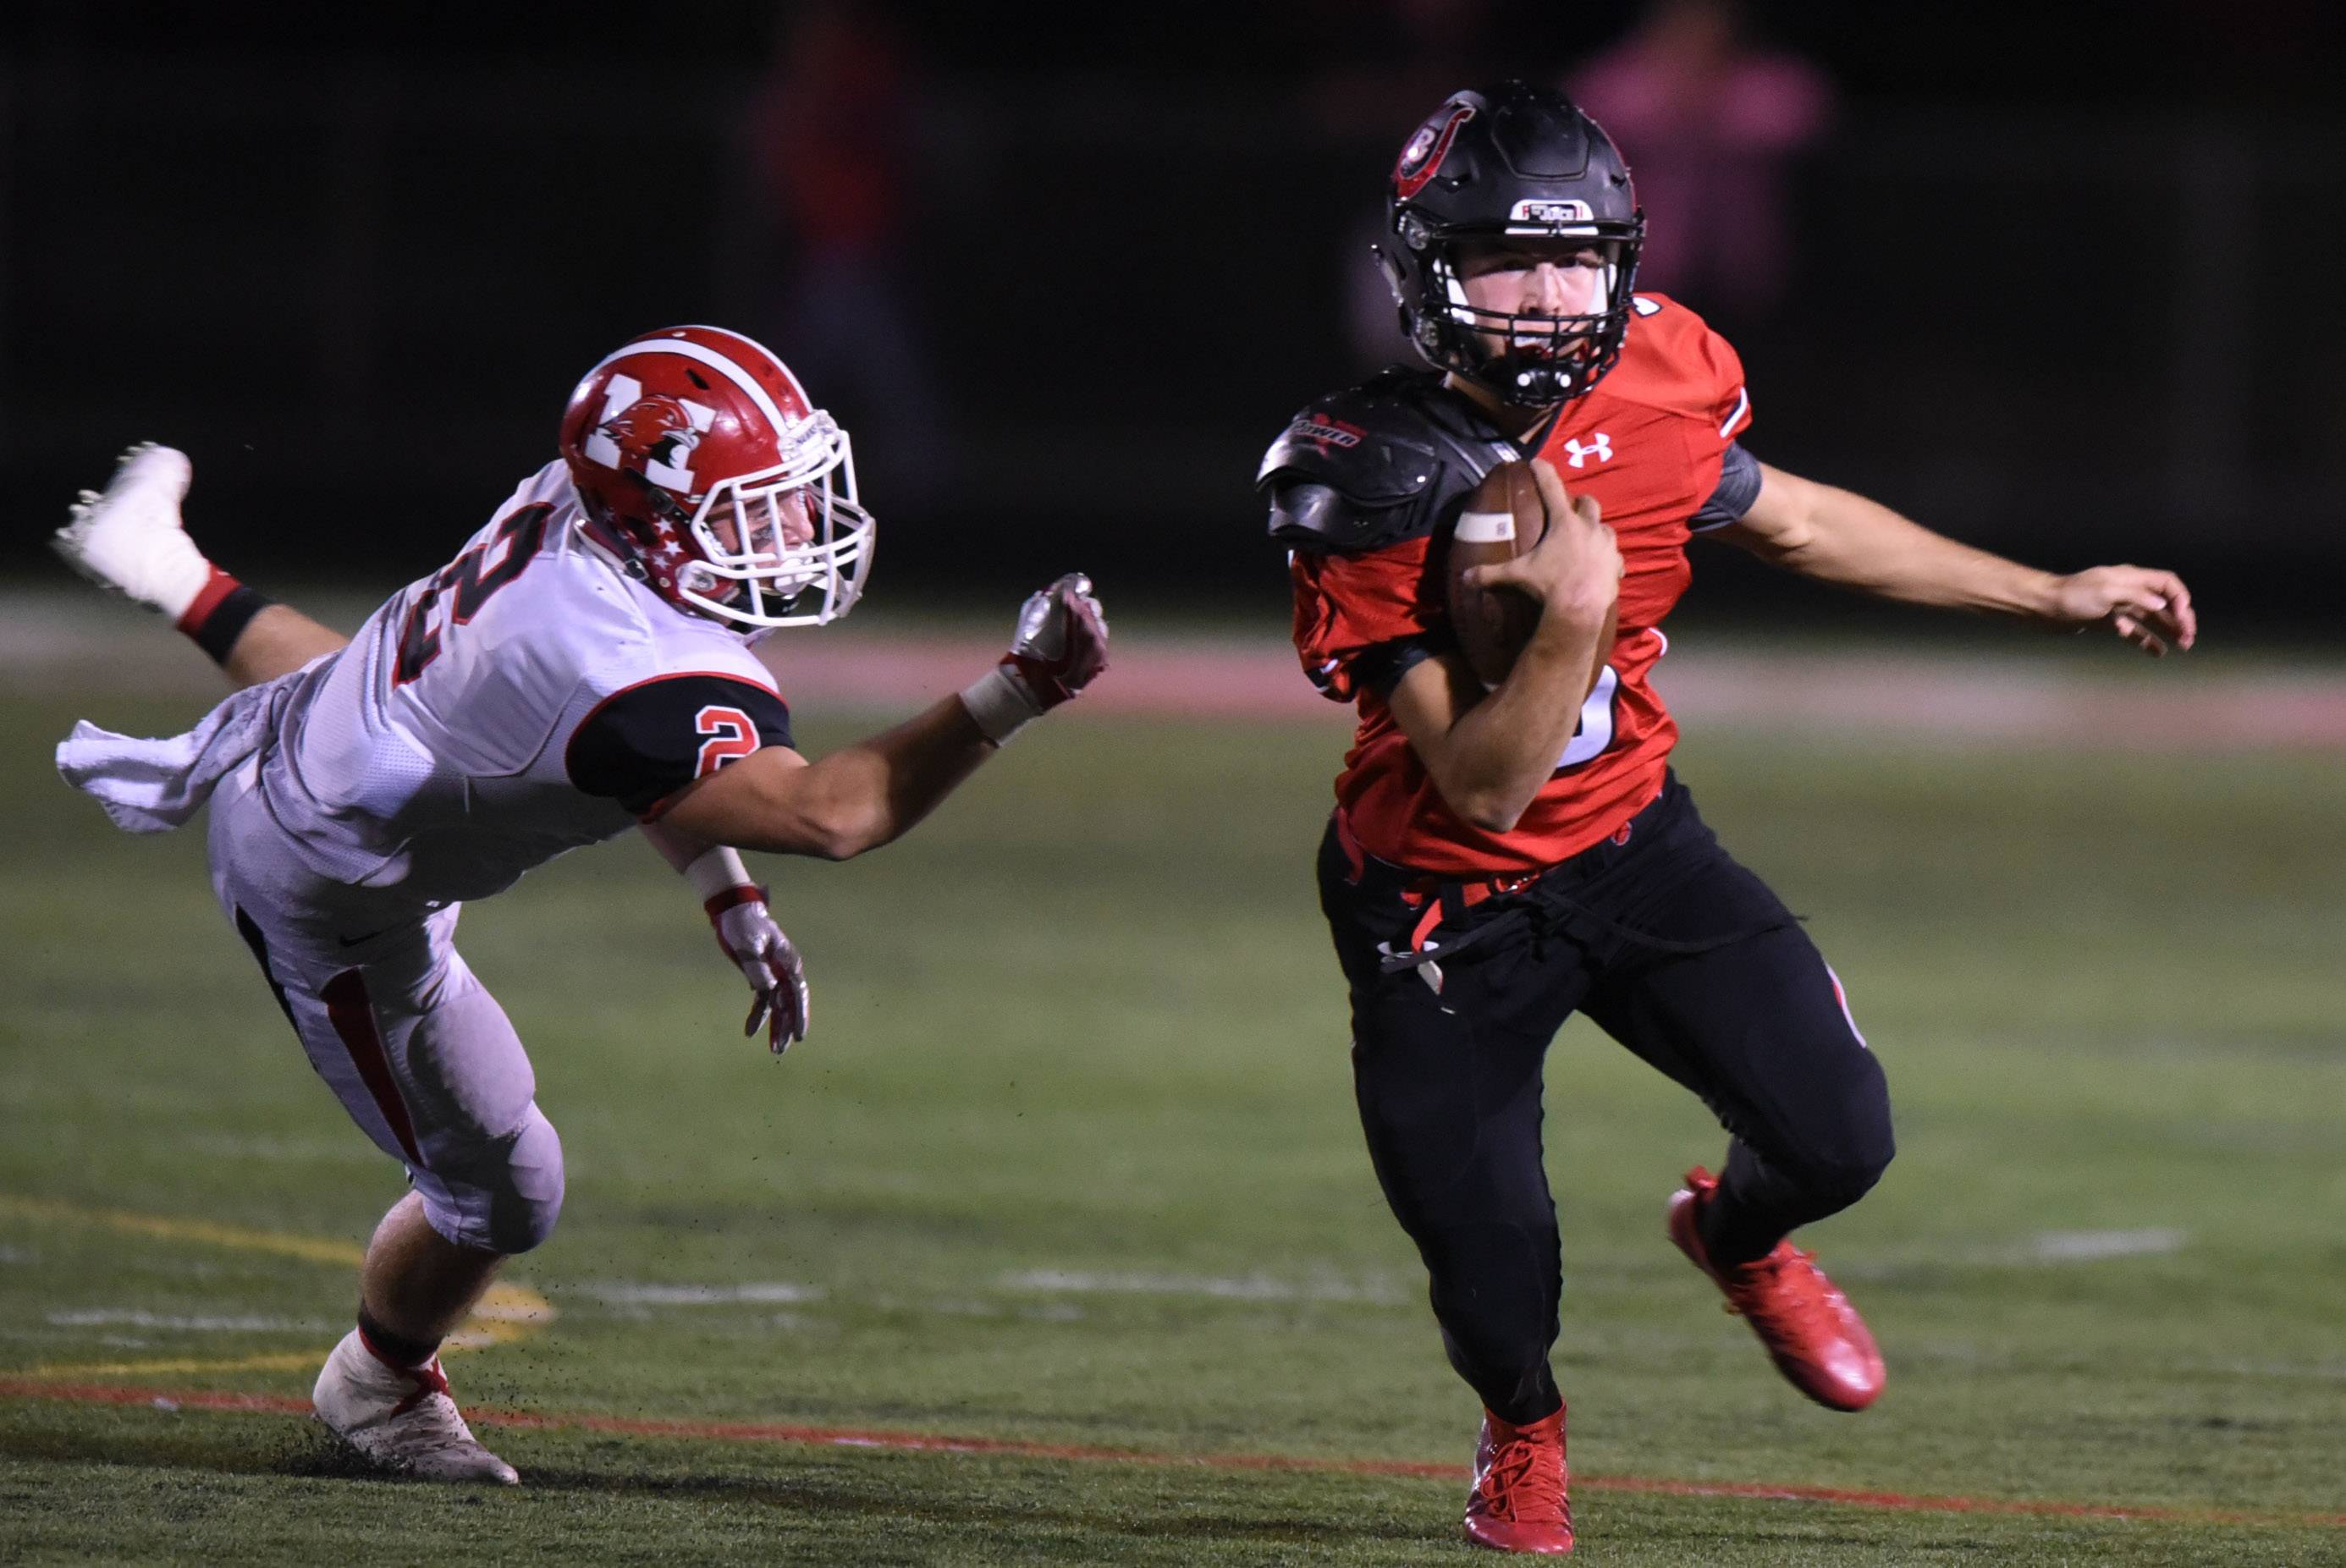 Barrington quarterback Ray Niro eludes Maine South's Matt Fortune as he carries the ball during Friday's football game at Barrington.